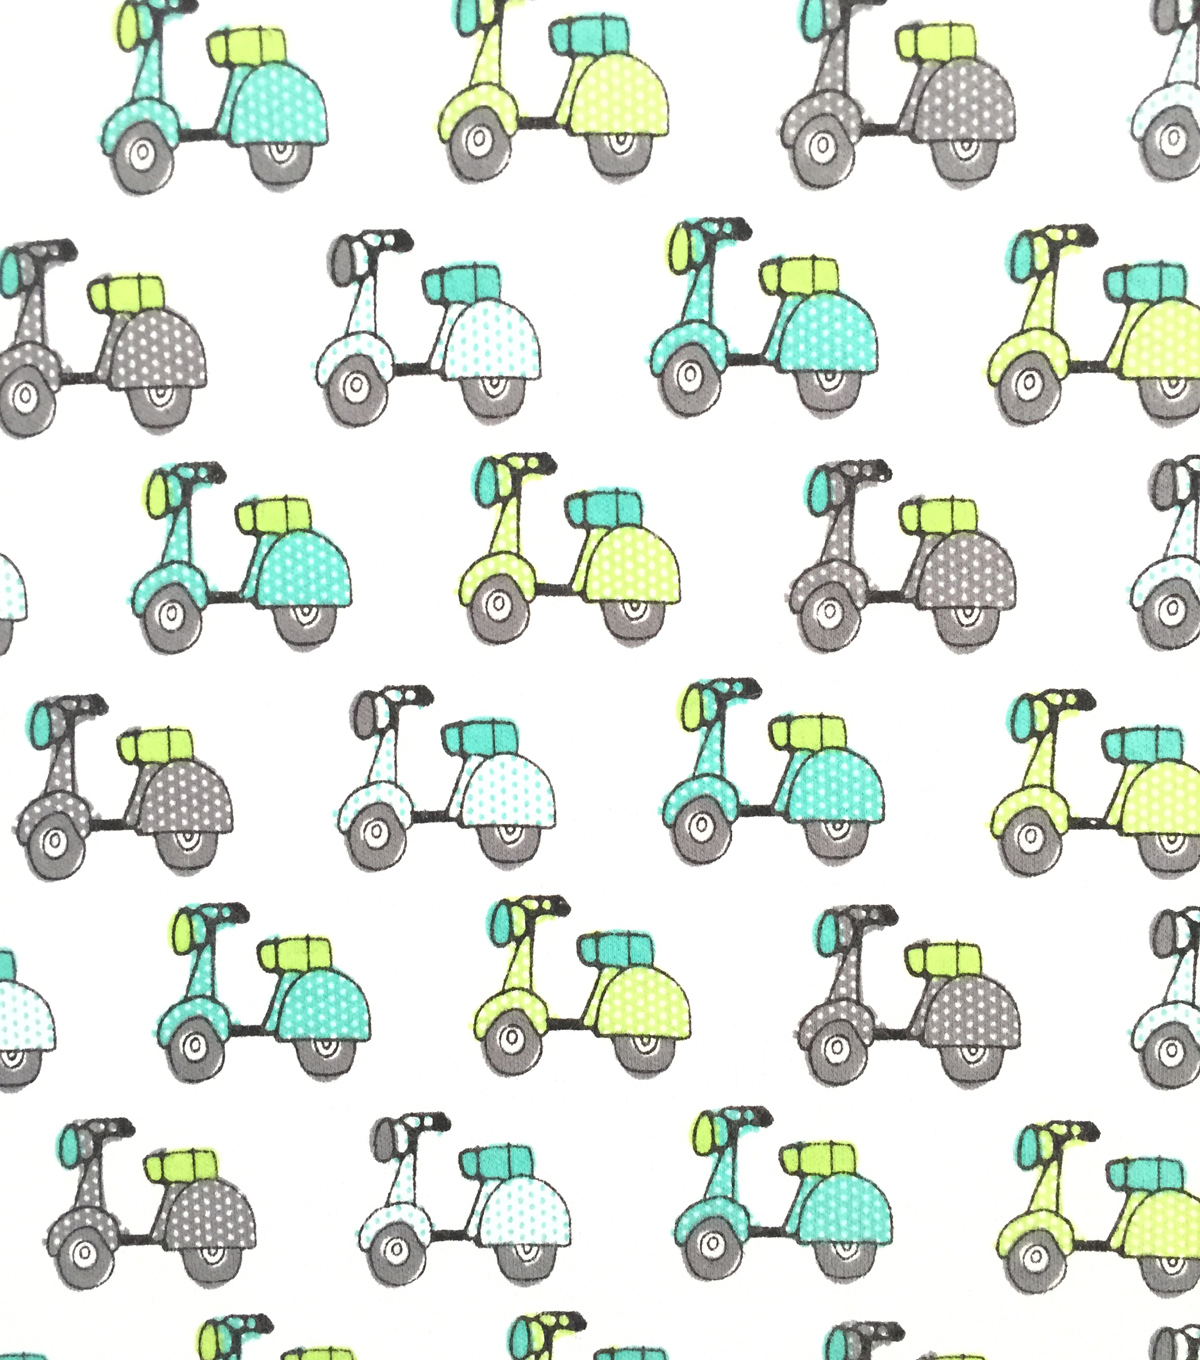 Doodles Juvenile Apparel Fabric -Scooters